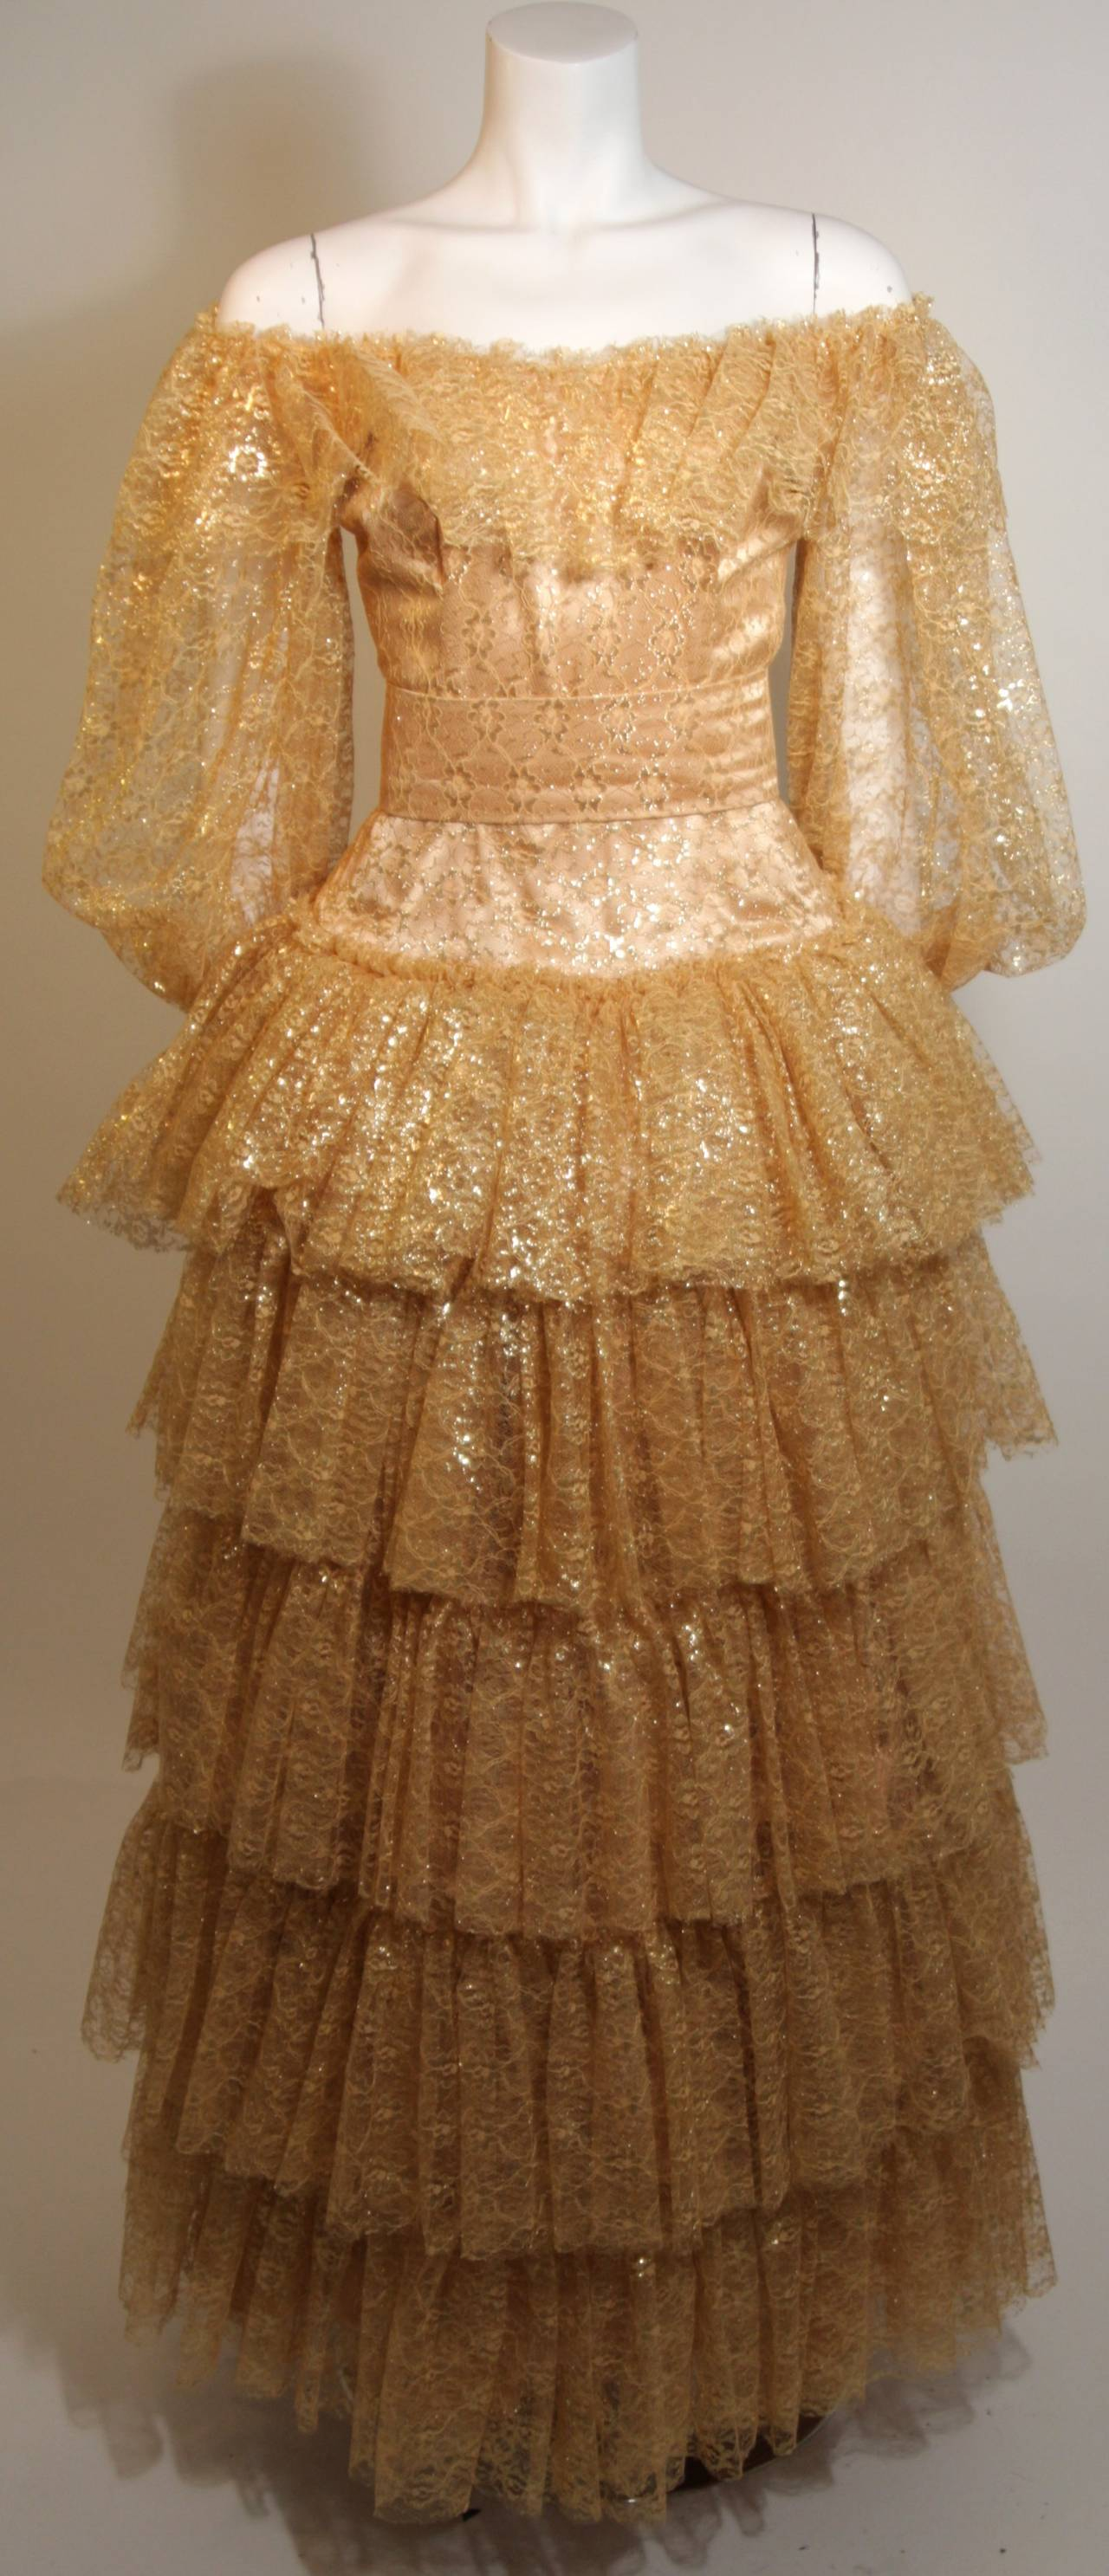 Attributed to Travilla Gold Tiered Lace Ball Gown with sheer lace sleeves size 4 2